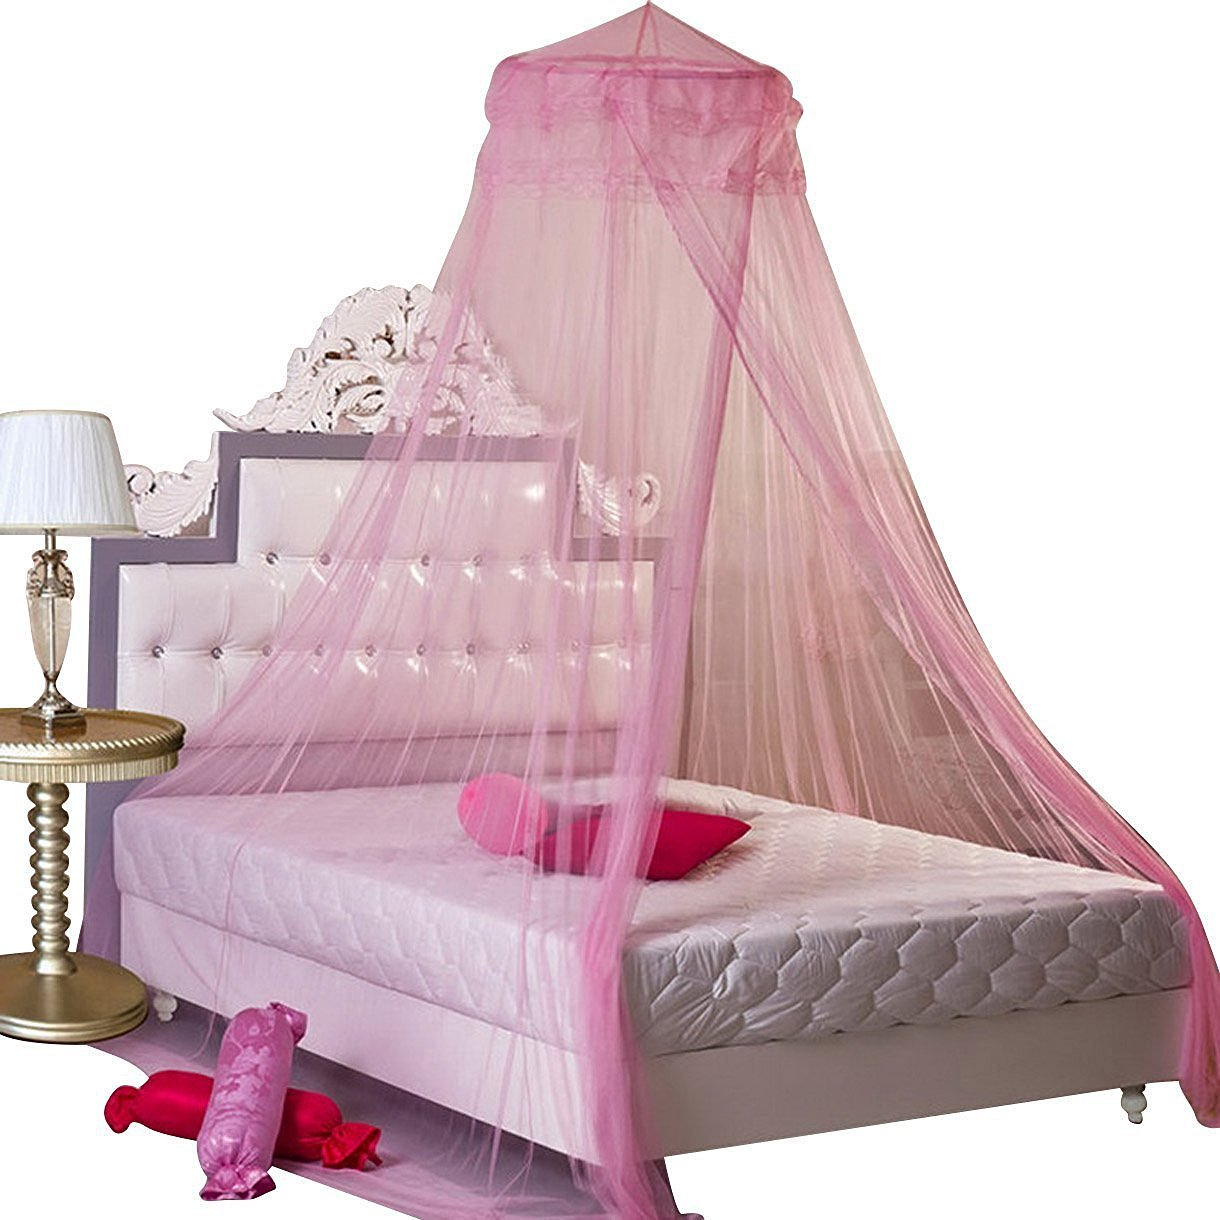 Canopy Bedroom Curtains: GYBest Round Lace Curtain Dome Bed Canopy Netting Princess